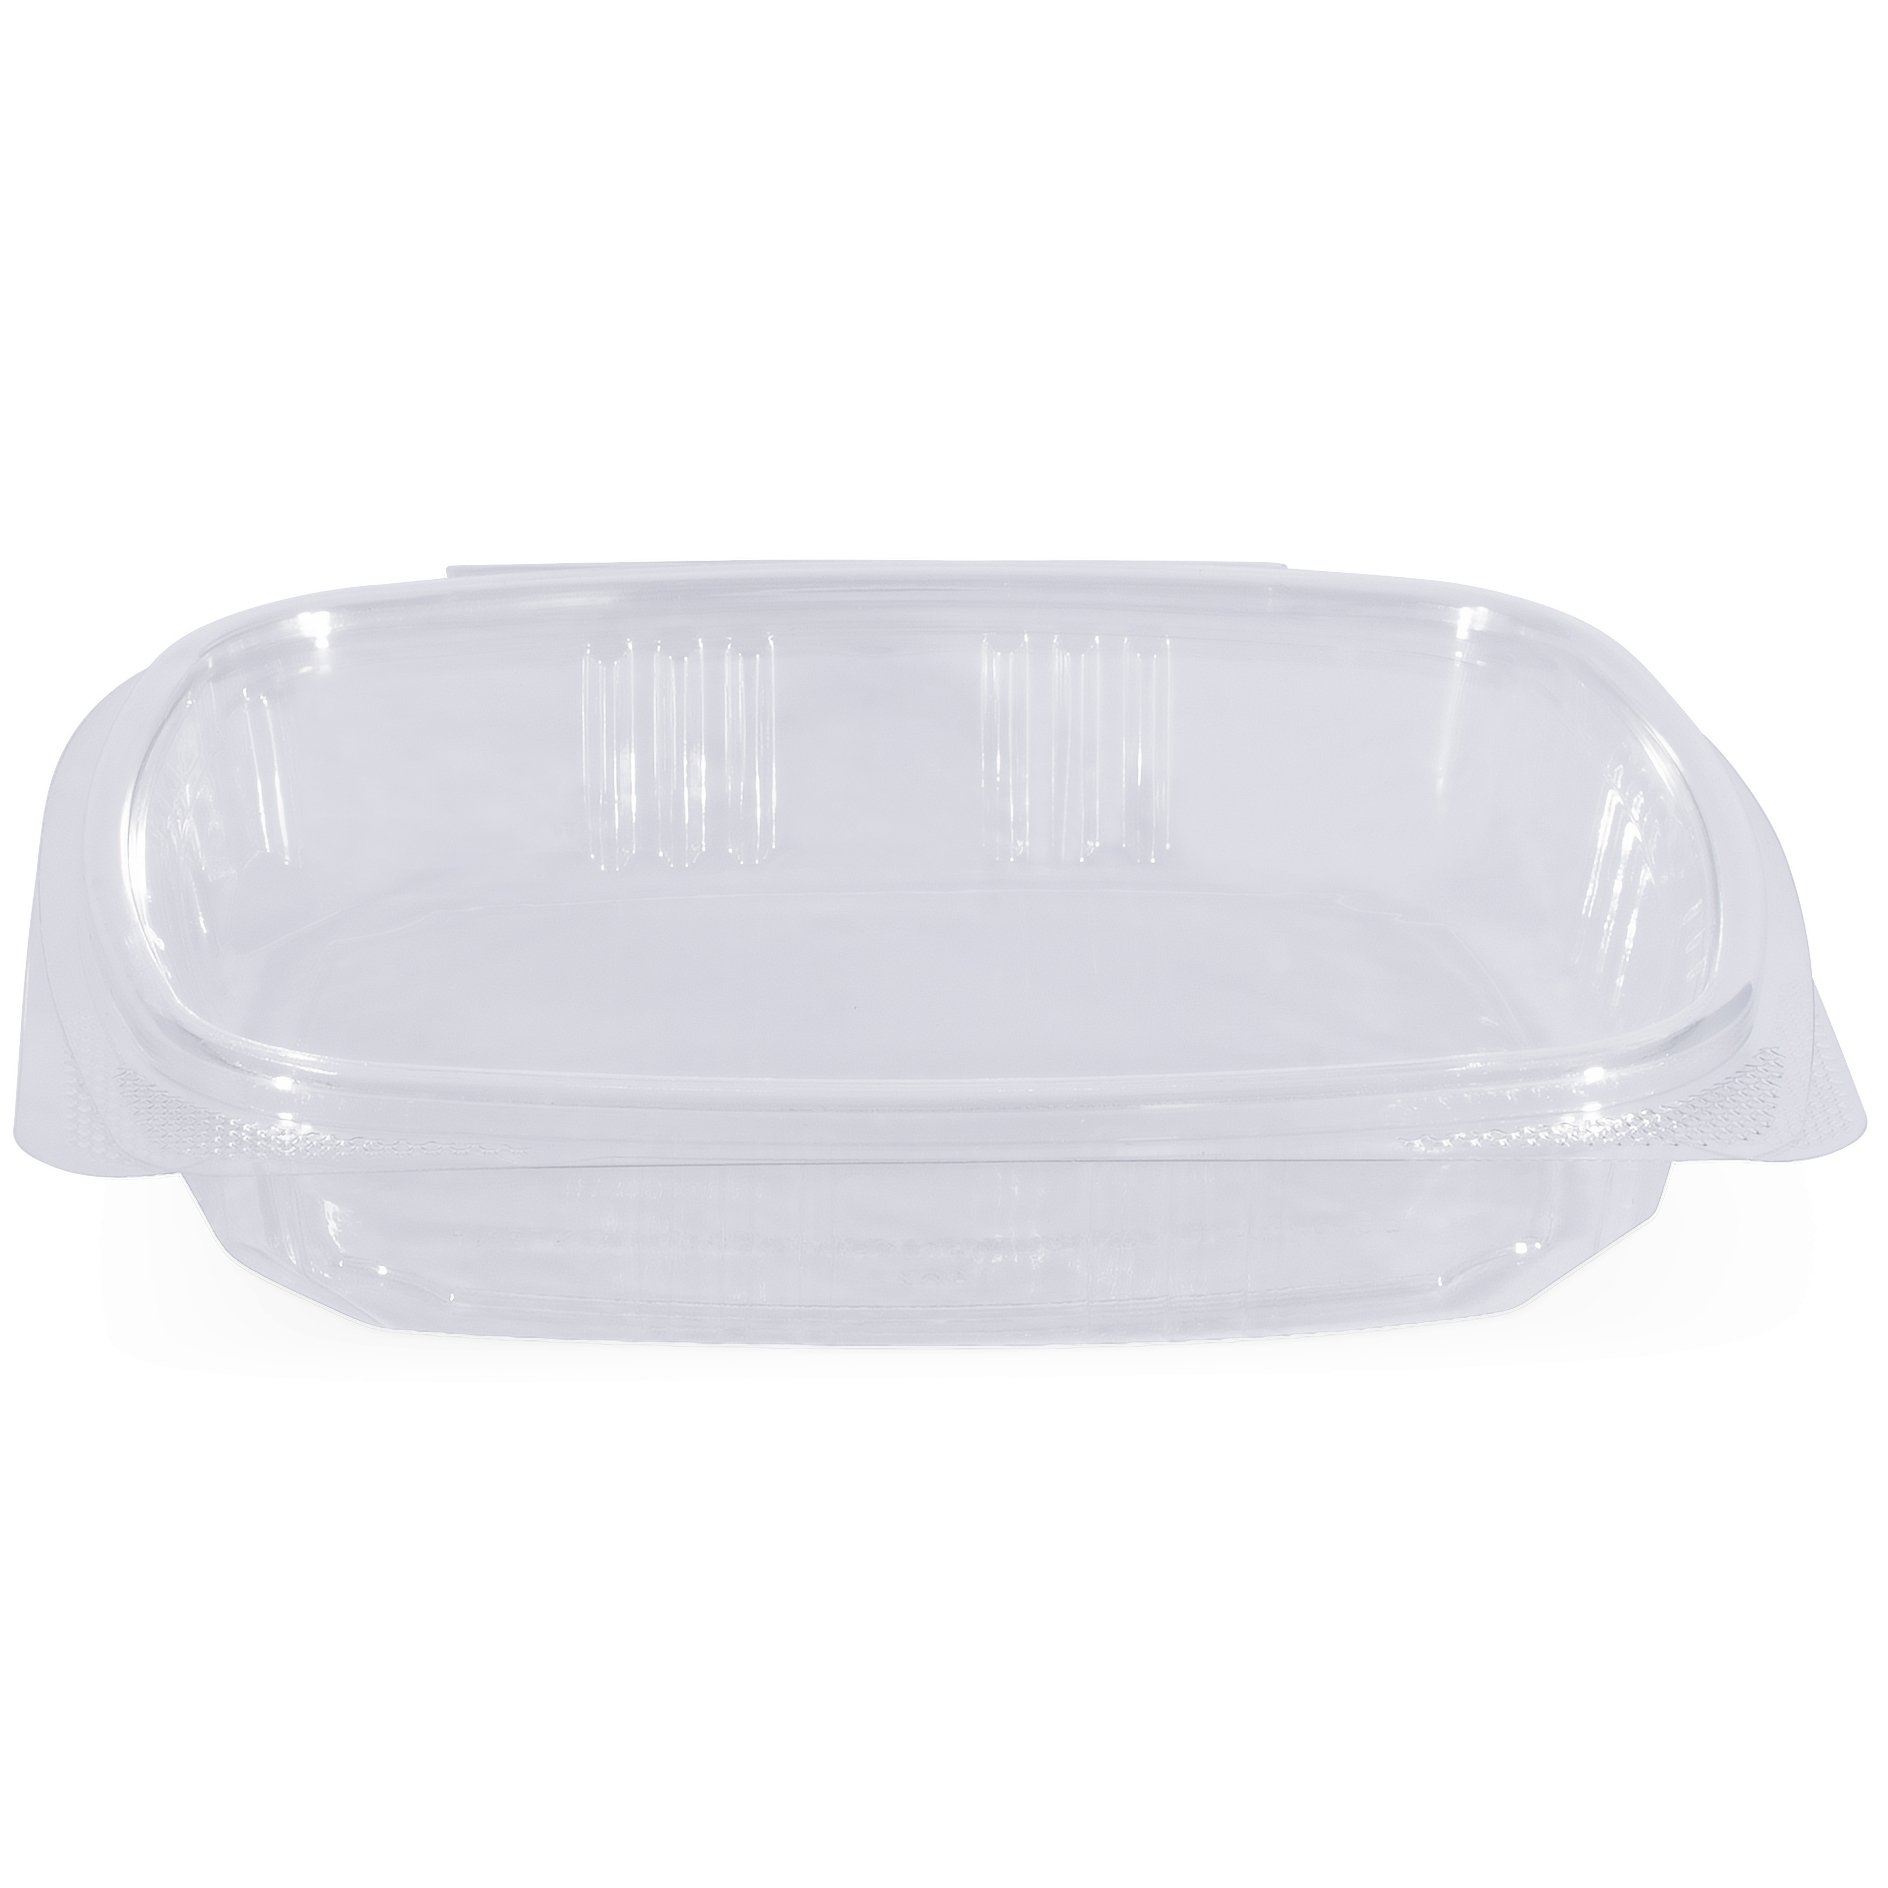 Simply Deliver 16 oz Shallow Hinged Lid Deli